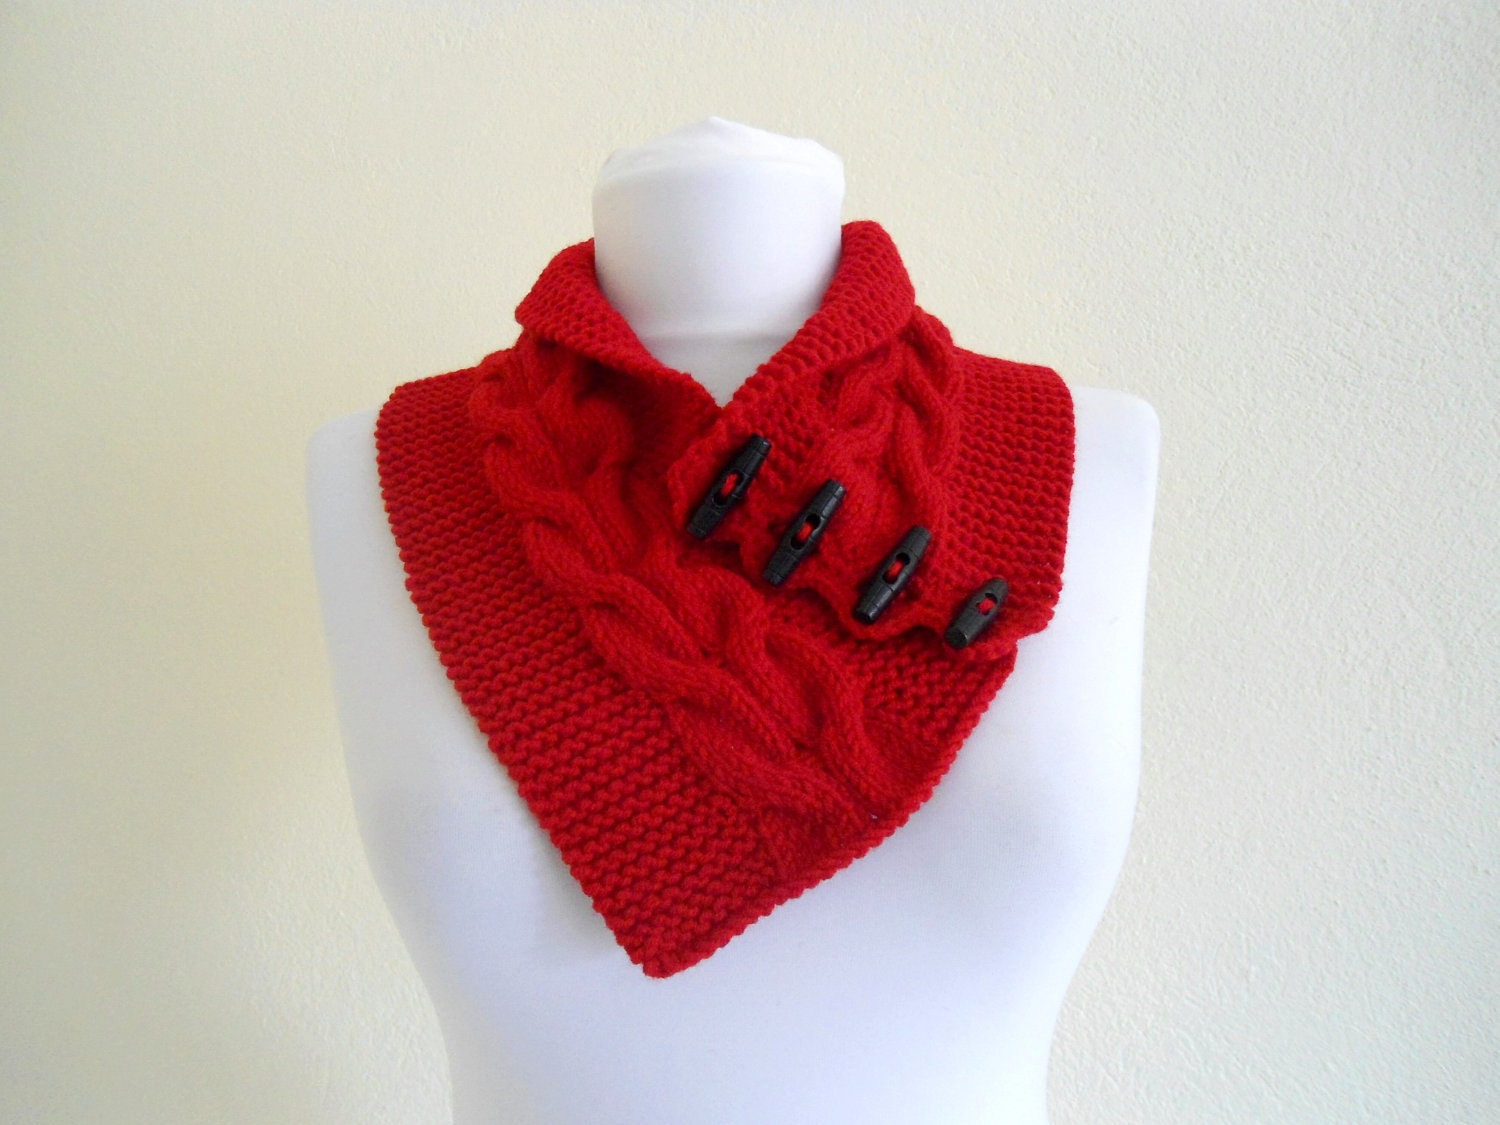 unisex, Red neckwarmers, wool, hand-knitted,fashion,gift, valentine, valentines day, winter trends, fashion, 2012